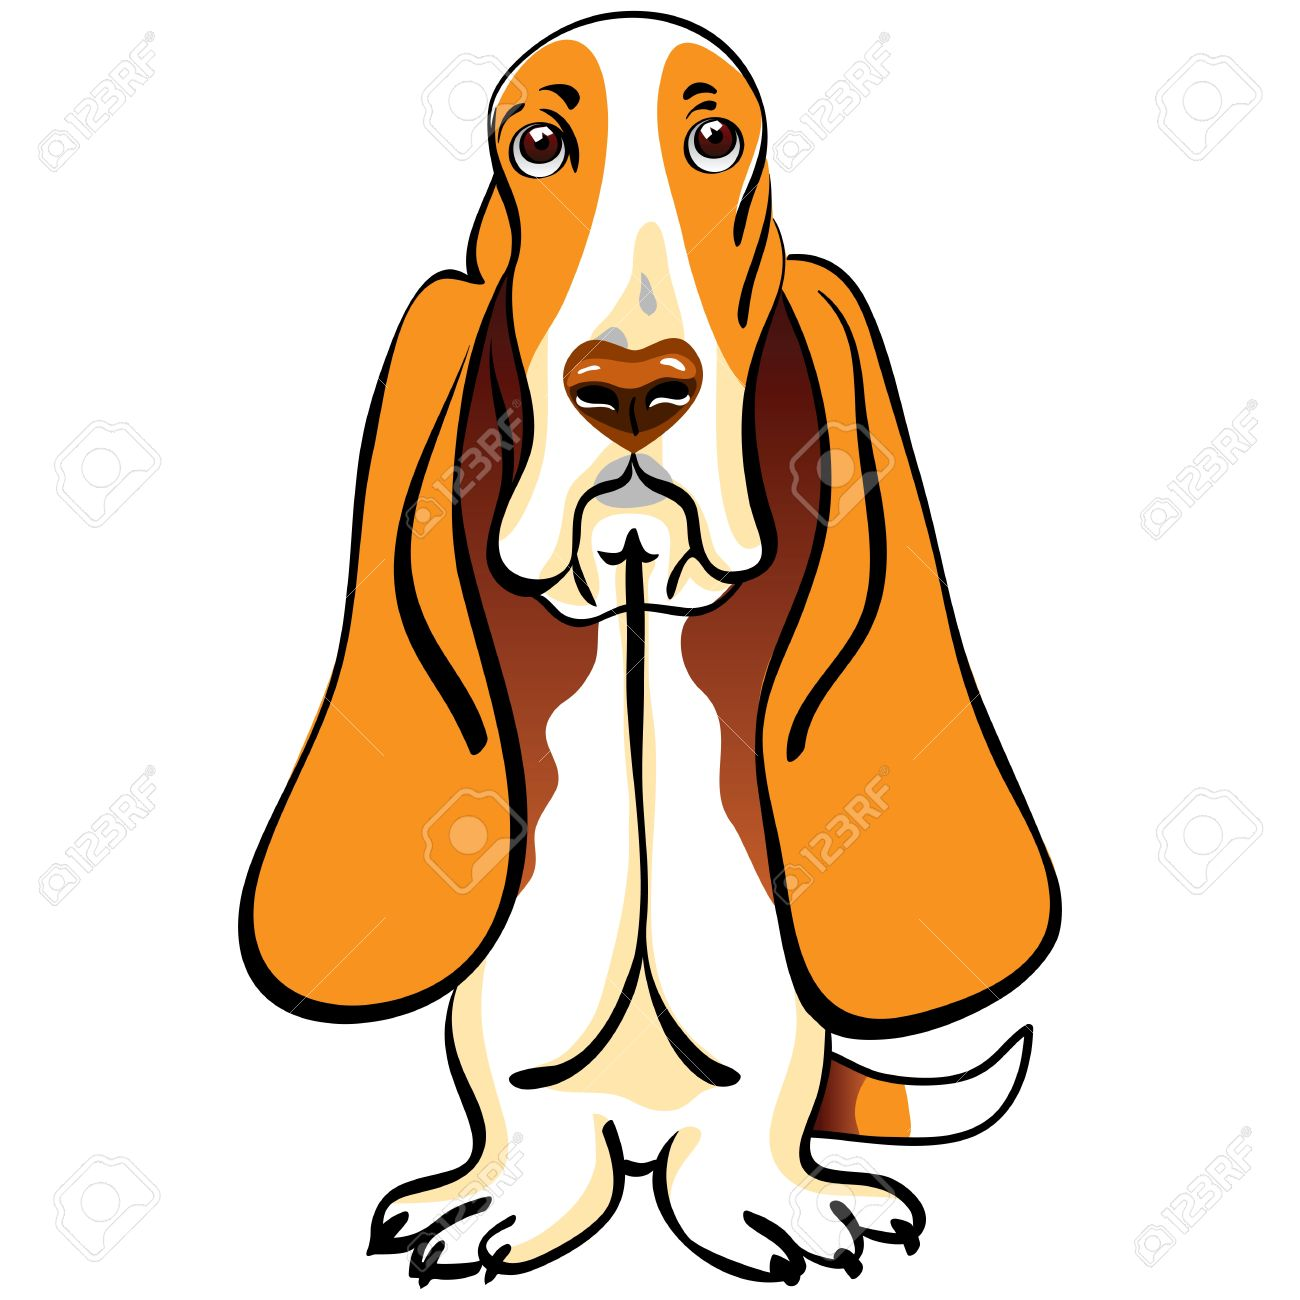 994 basset hound stock illustrations cliparts and royalty free rh 123rf com basset hound puppy clipart basset hound clipart black and white